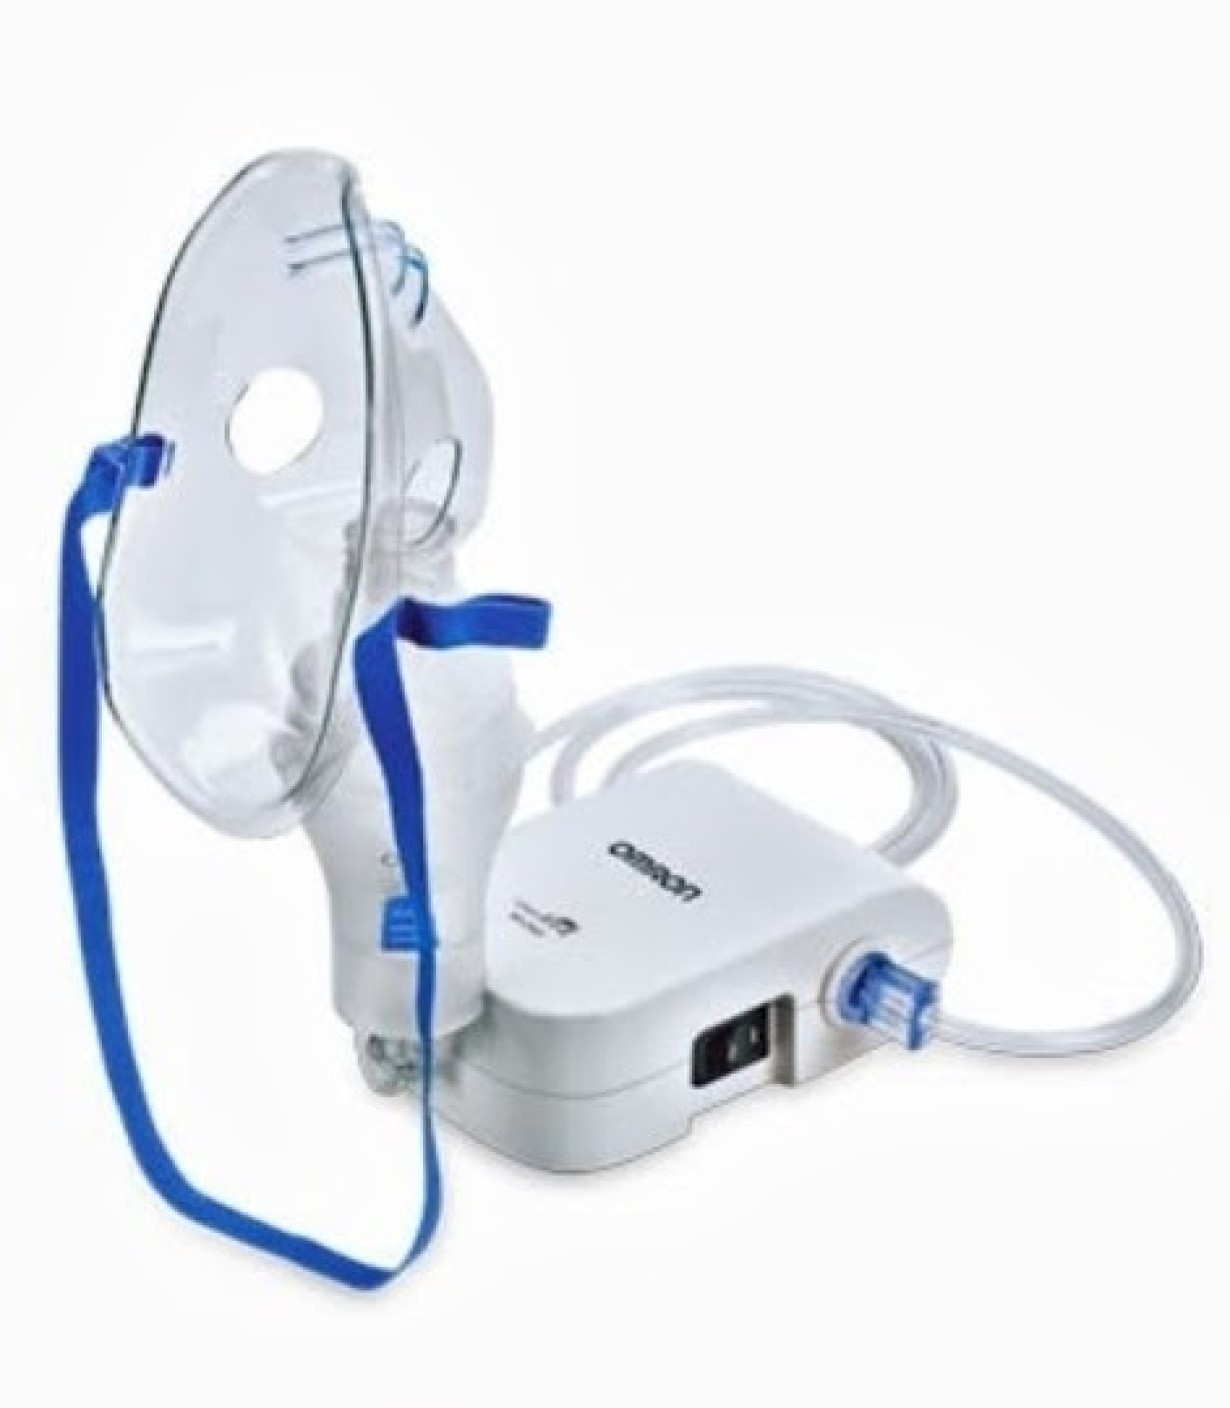 Compare Amp Buy Omron Nebulizer Ne C802 Online In India At